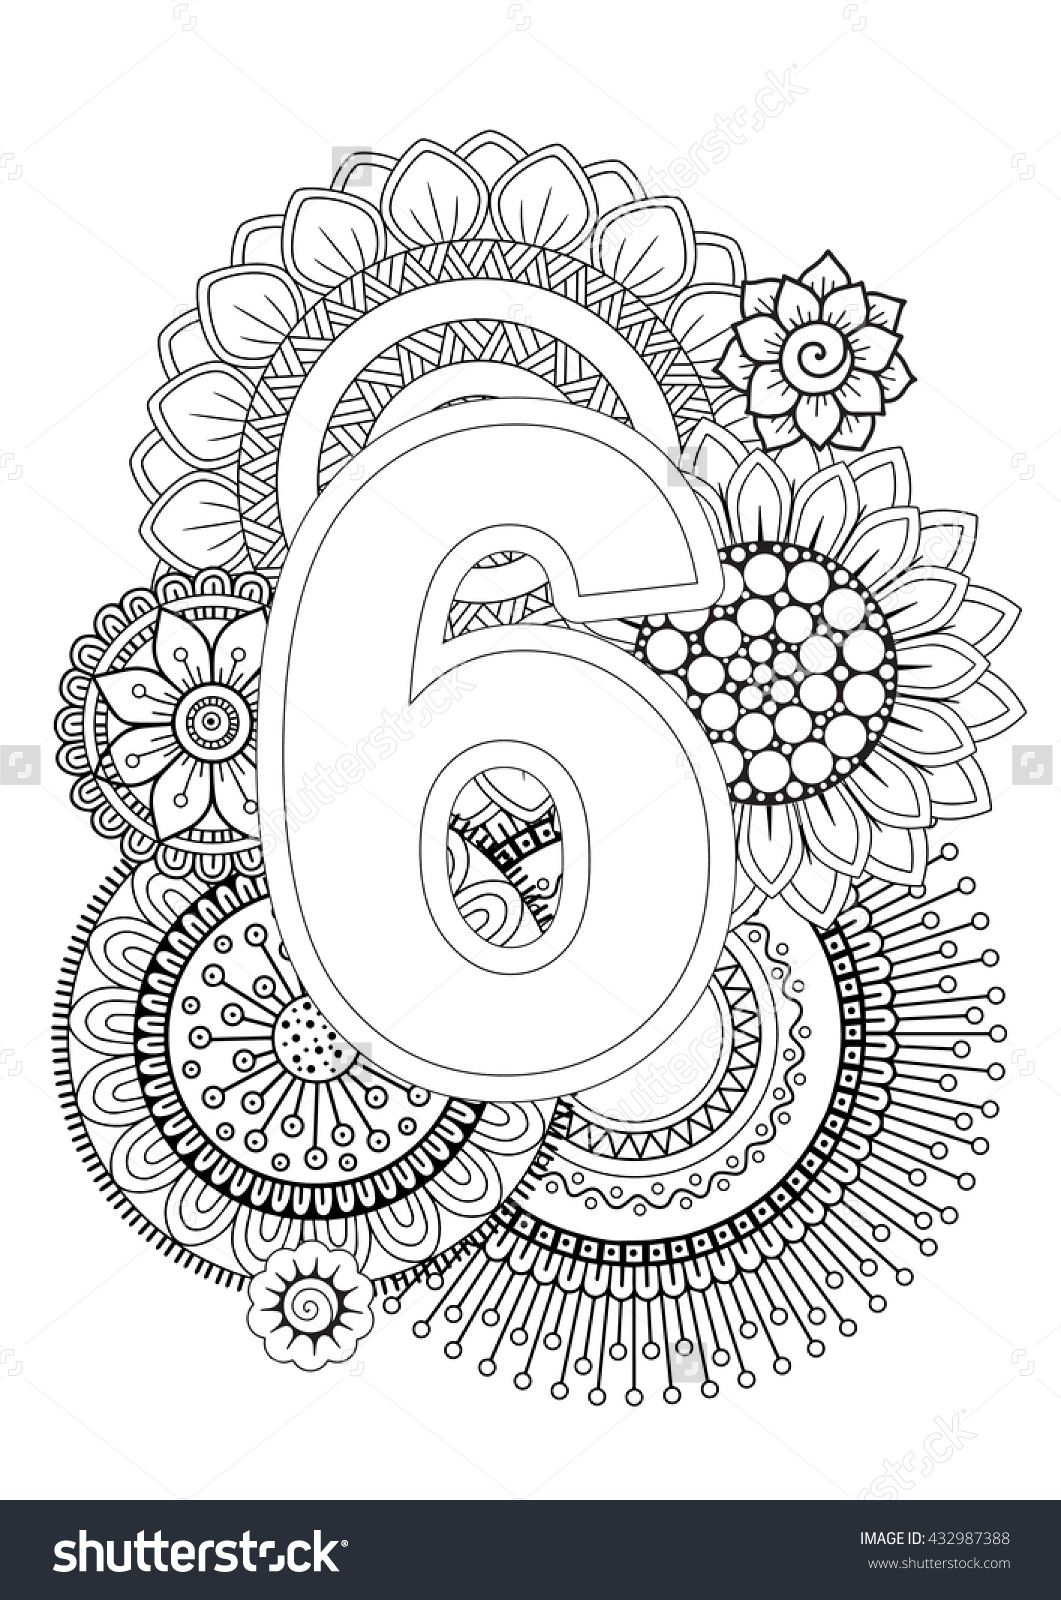 Doodle Floral Letters. Coloring Book For Adult. Mandala and ...